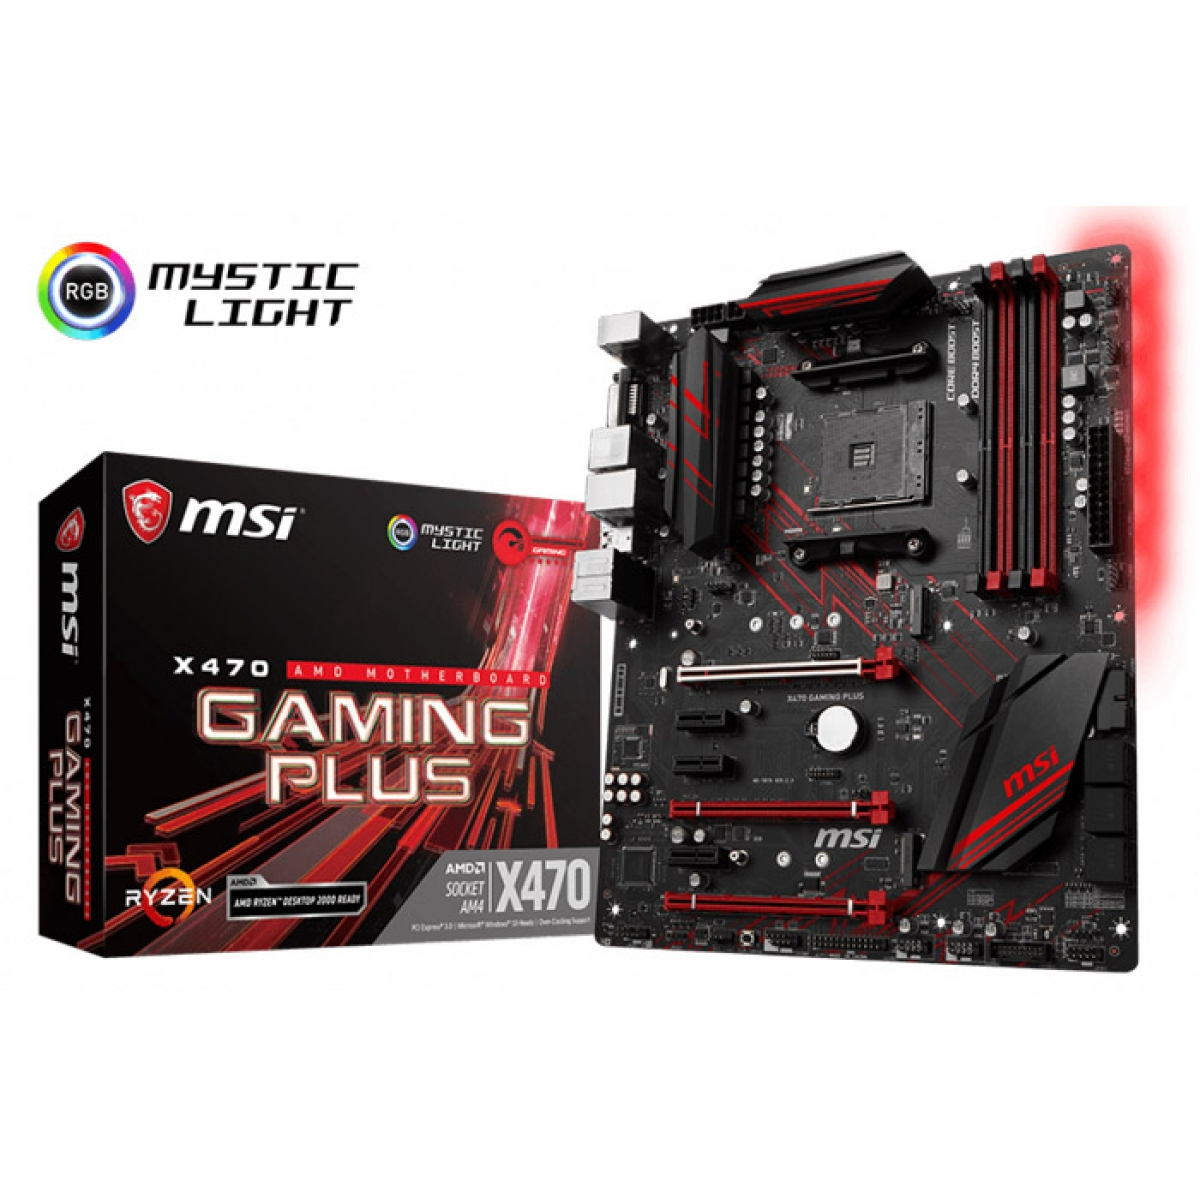 Placa Mãe MSI X470 Gaming Plus, Chipset X470, AMD AM4, ATX, DDR4